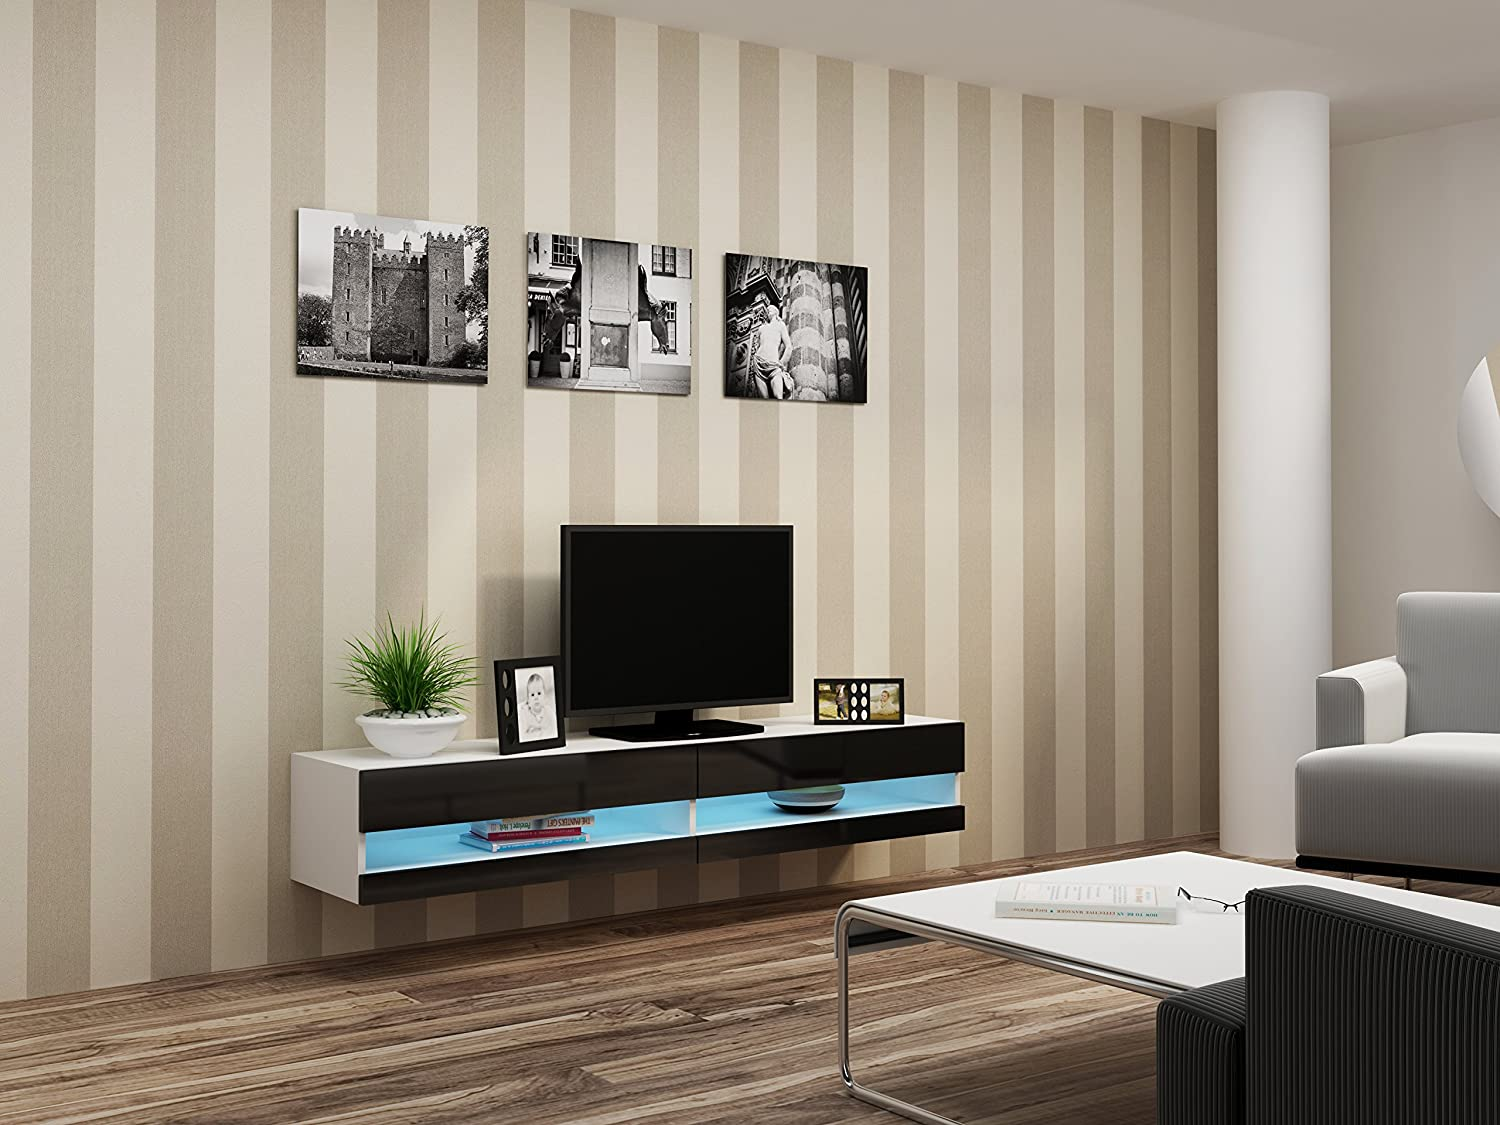 Wall Mounted Cabinets For Living Room High Gloss Living Room Set With Led Lights Tv Stand Wall